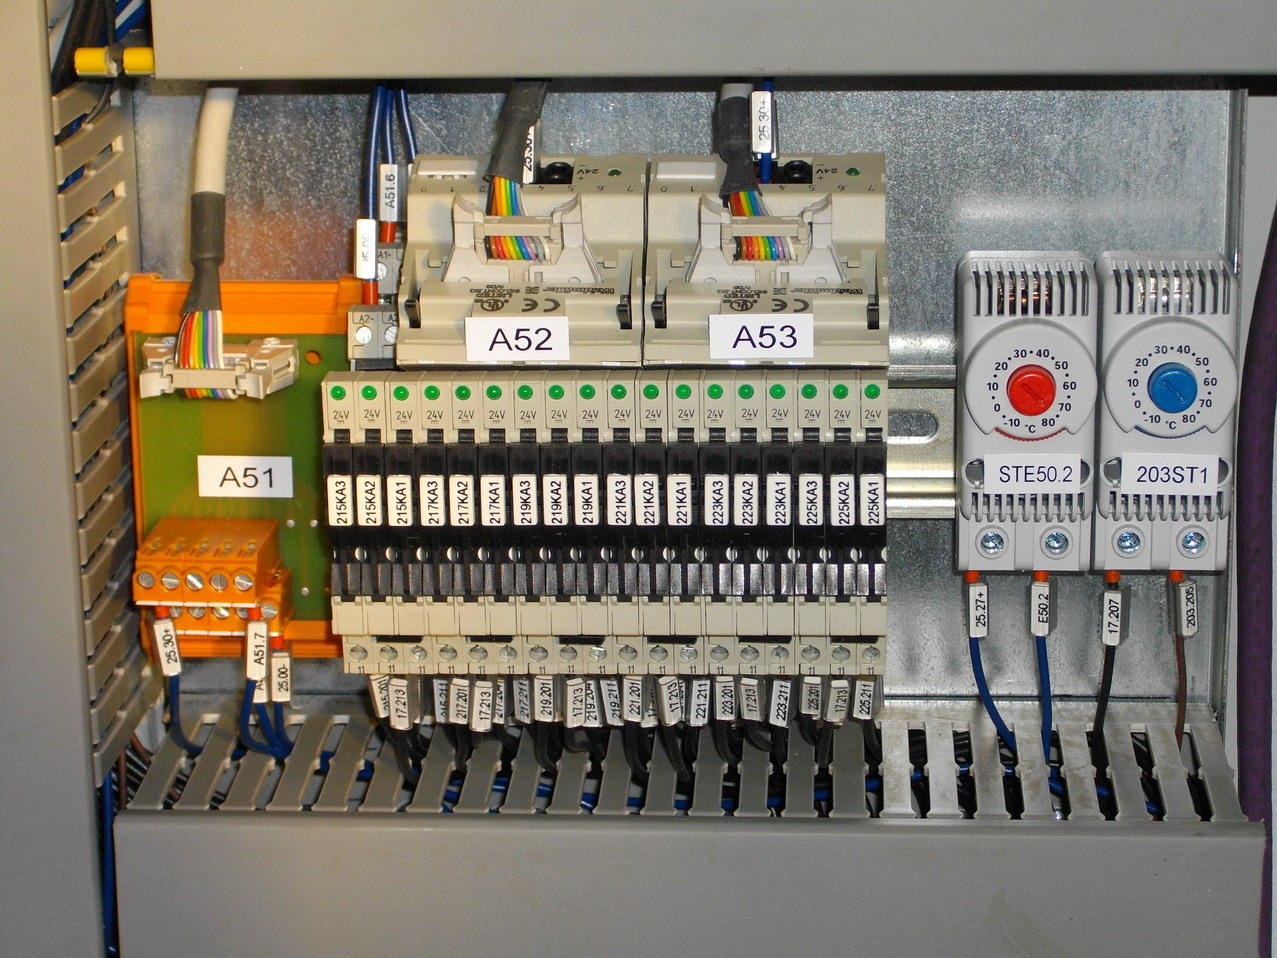 Plc panel wiring wire center plc panel wiring circuit connection diagram u2022 rh scooplocal co plc panel wiring diagram pdf plc panel wiring jobs cheapraybanclubmaster Choice Image